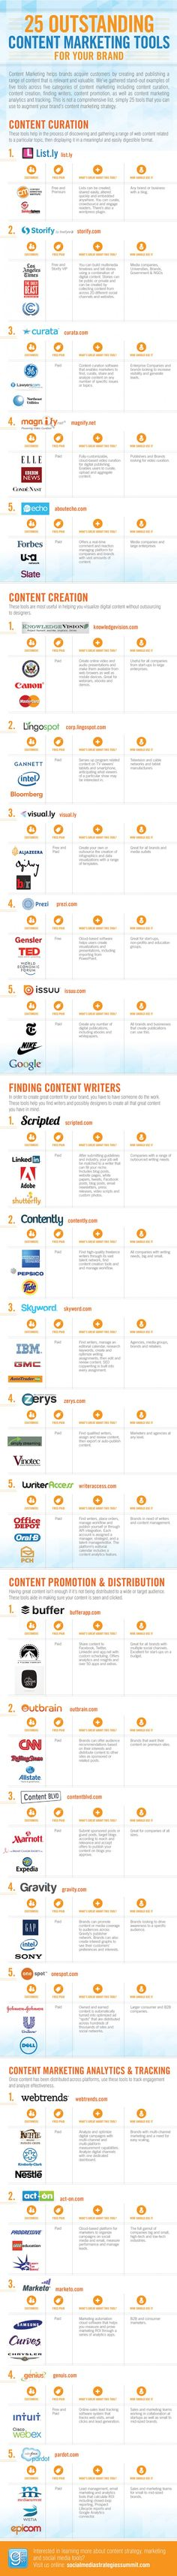 10 Awesome Infographics to Guide your Marketing Plan for 2014 - Search Engine Journal